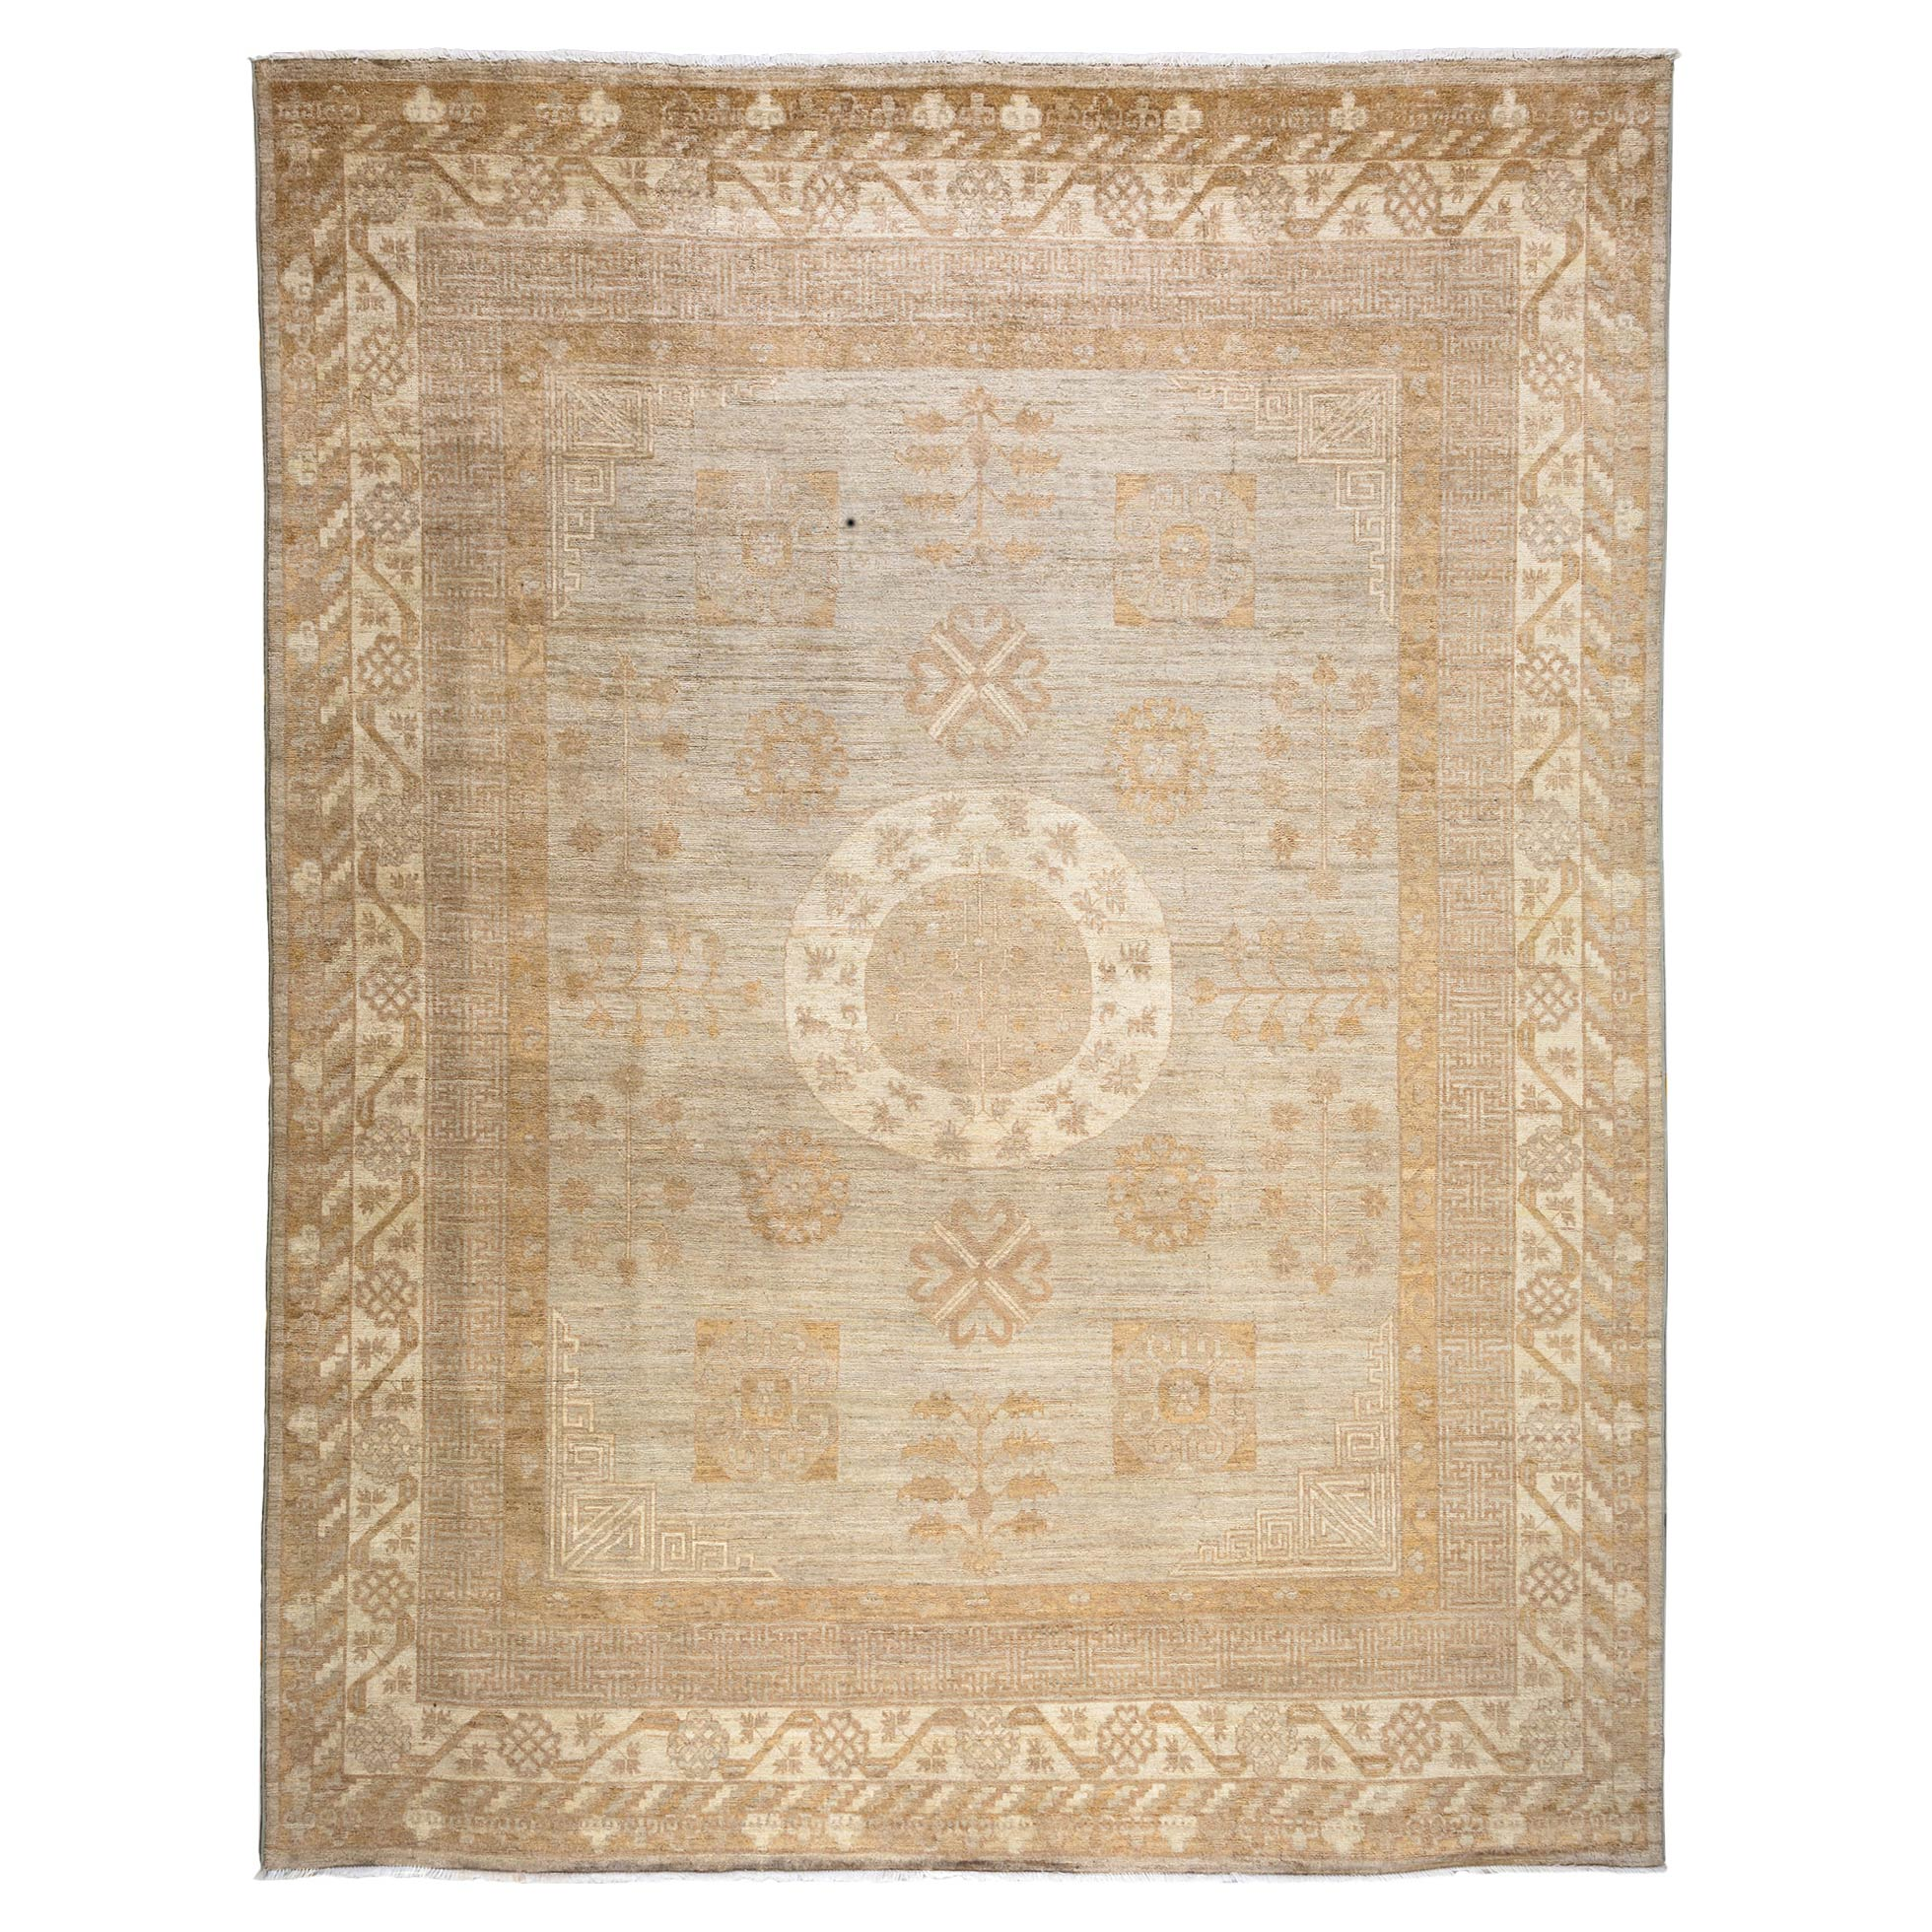 Cain French Country Brown Antique Wool Rug - 9'1 x 11'6